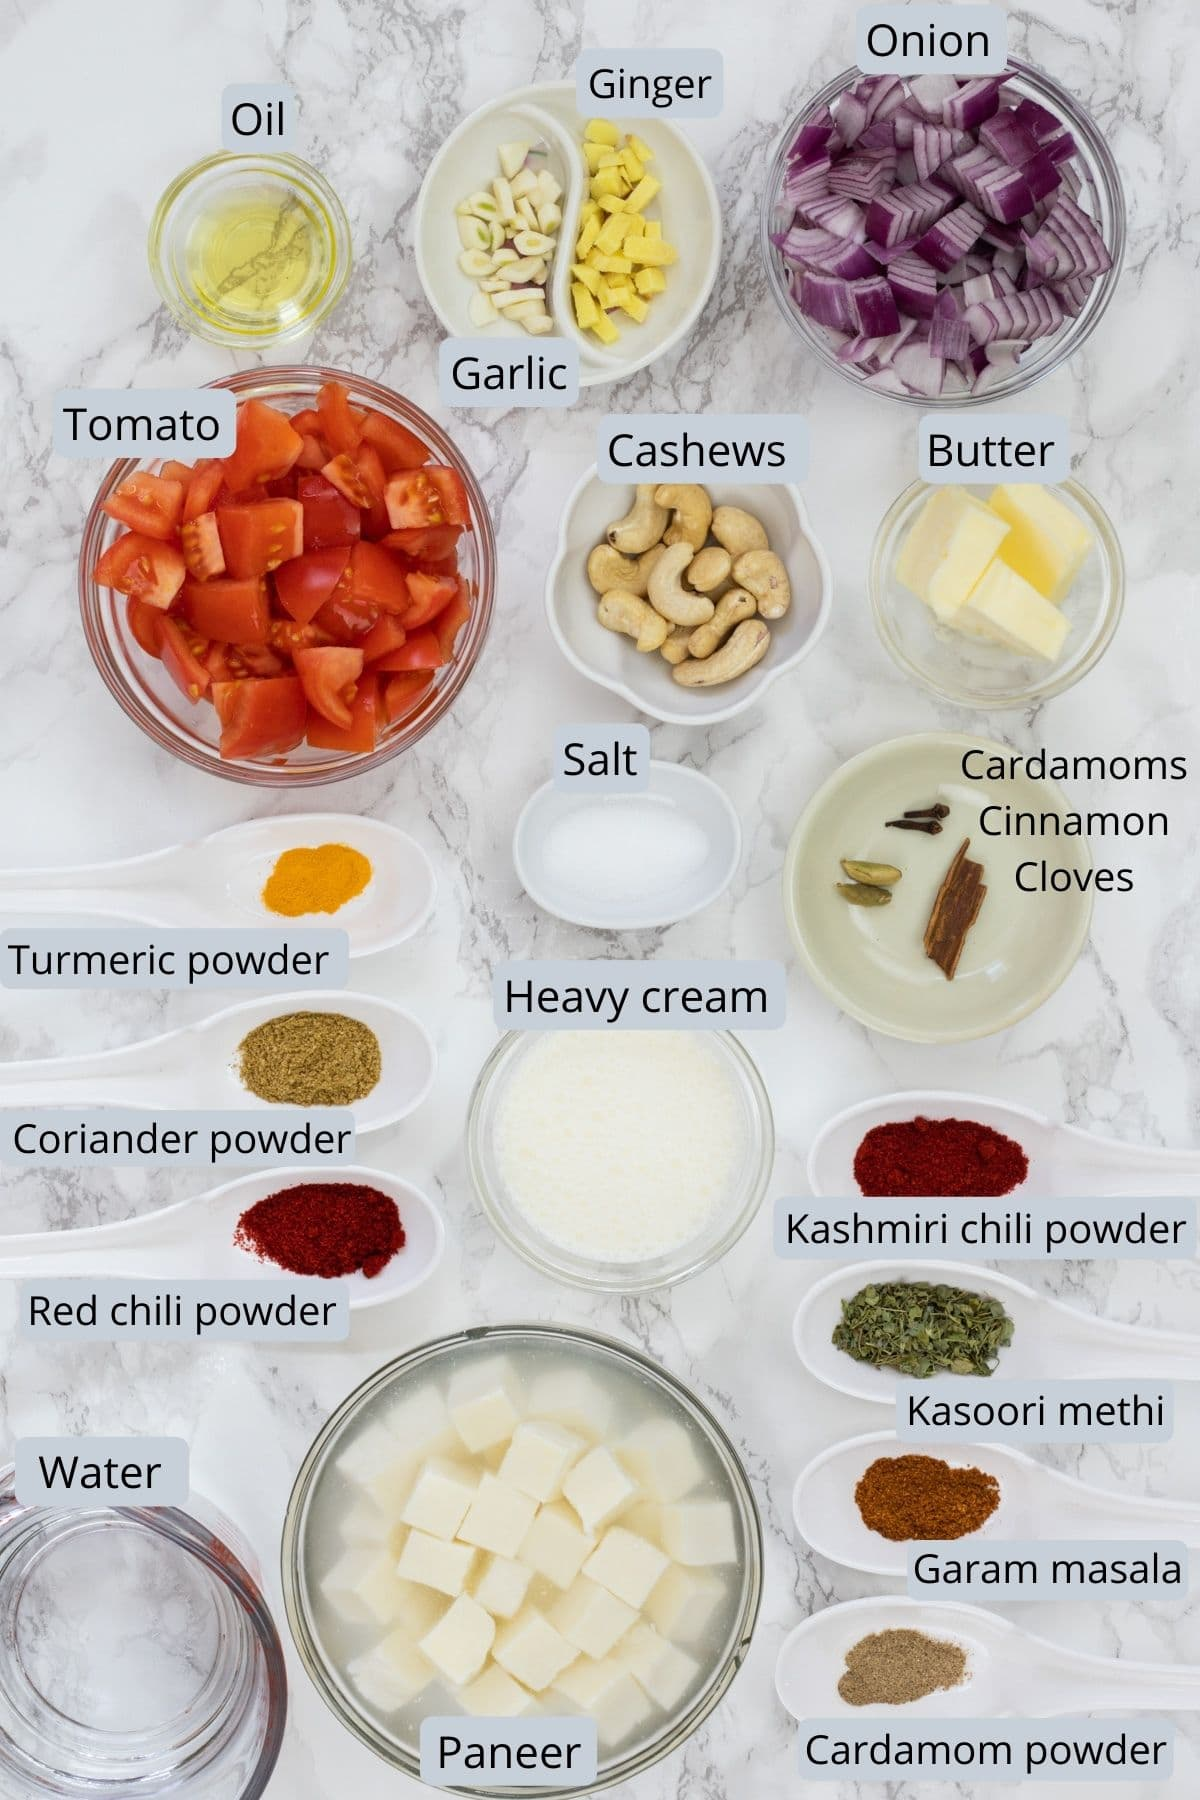 Paneer butter masala recipe ingredients in individual bowls and spoons on marble surface.